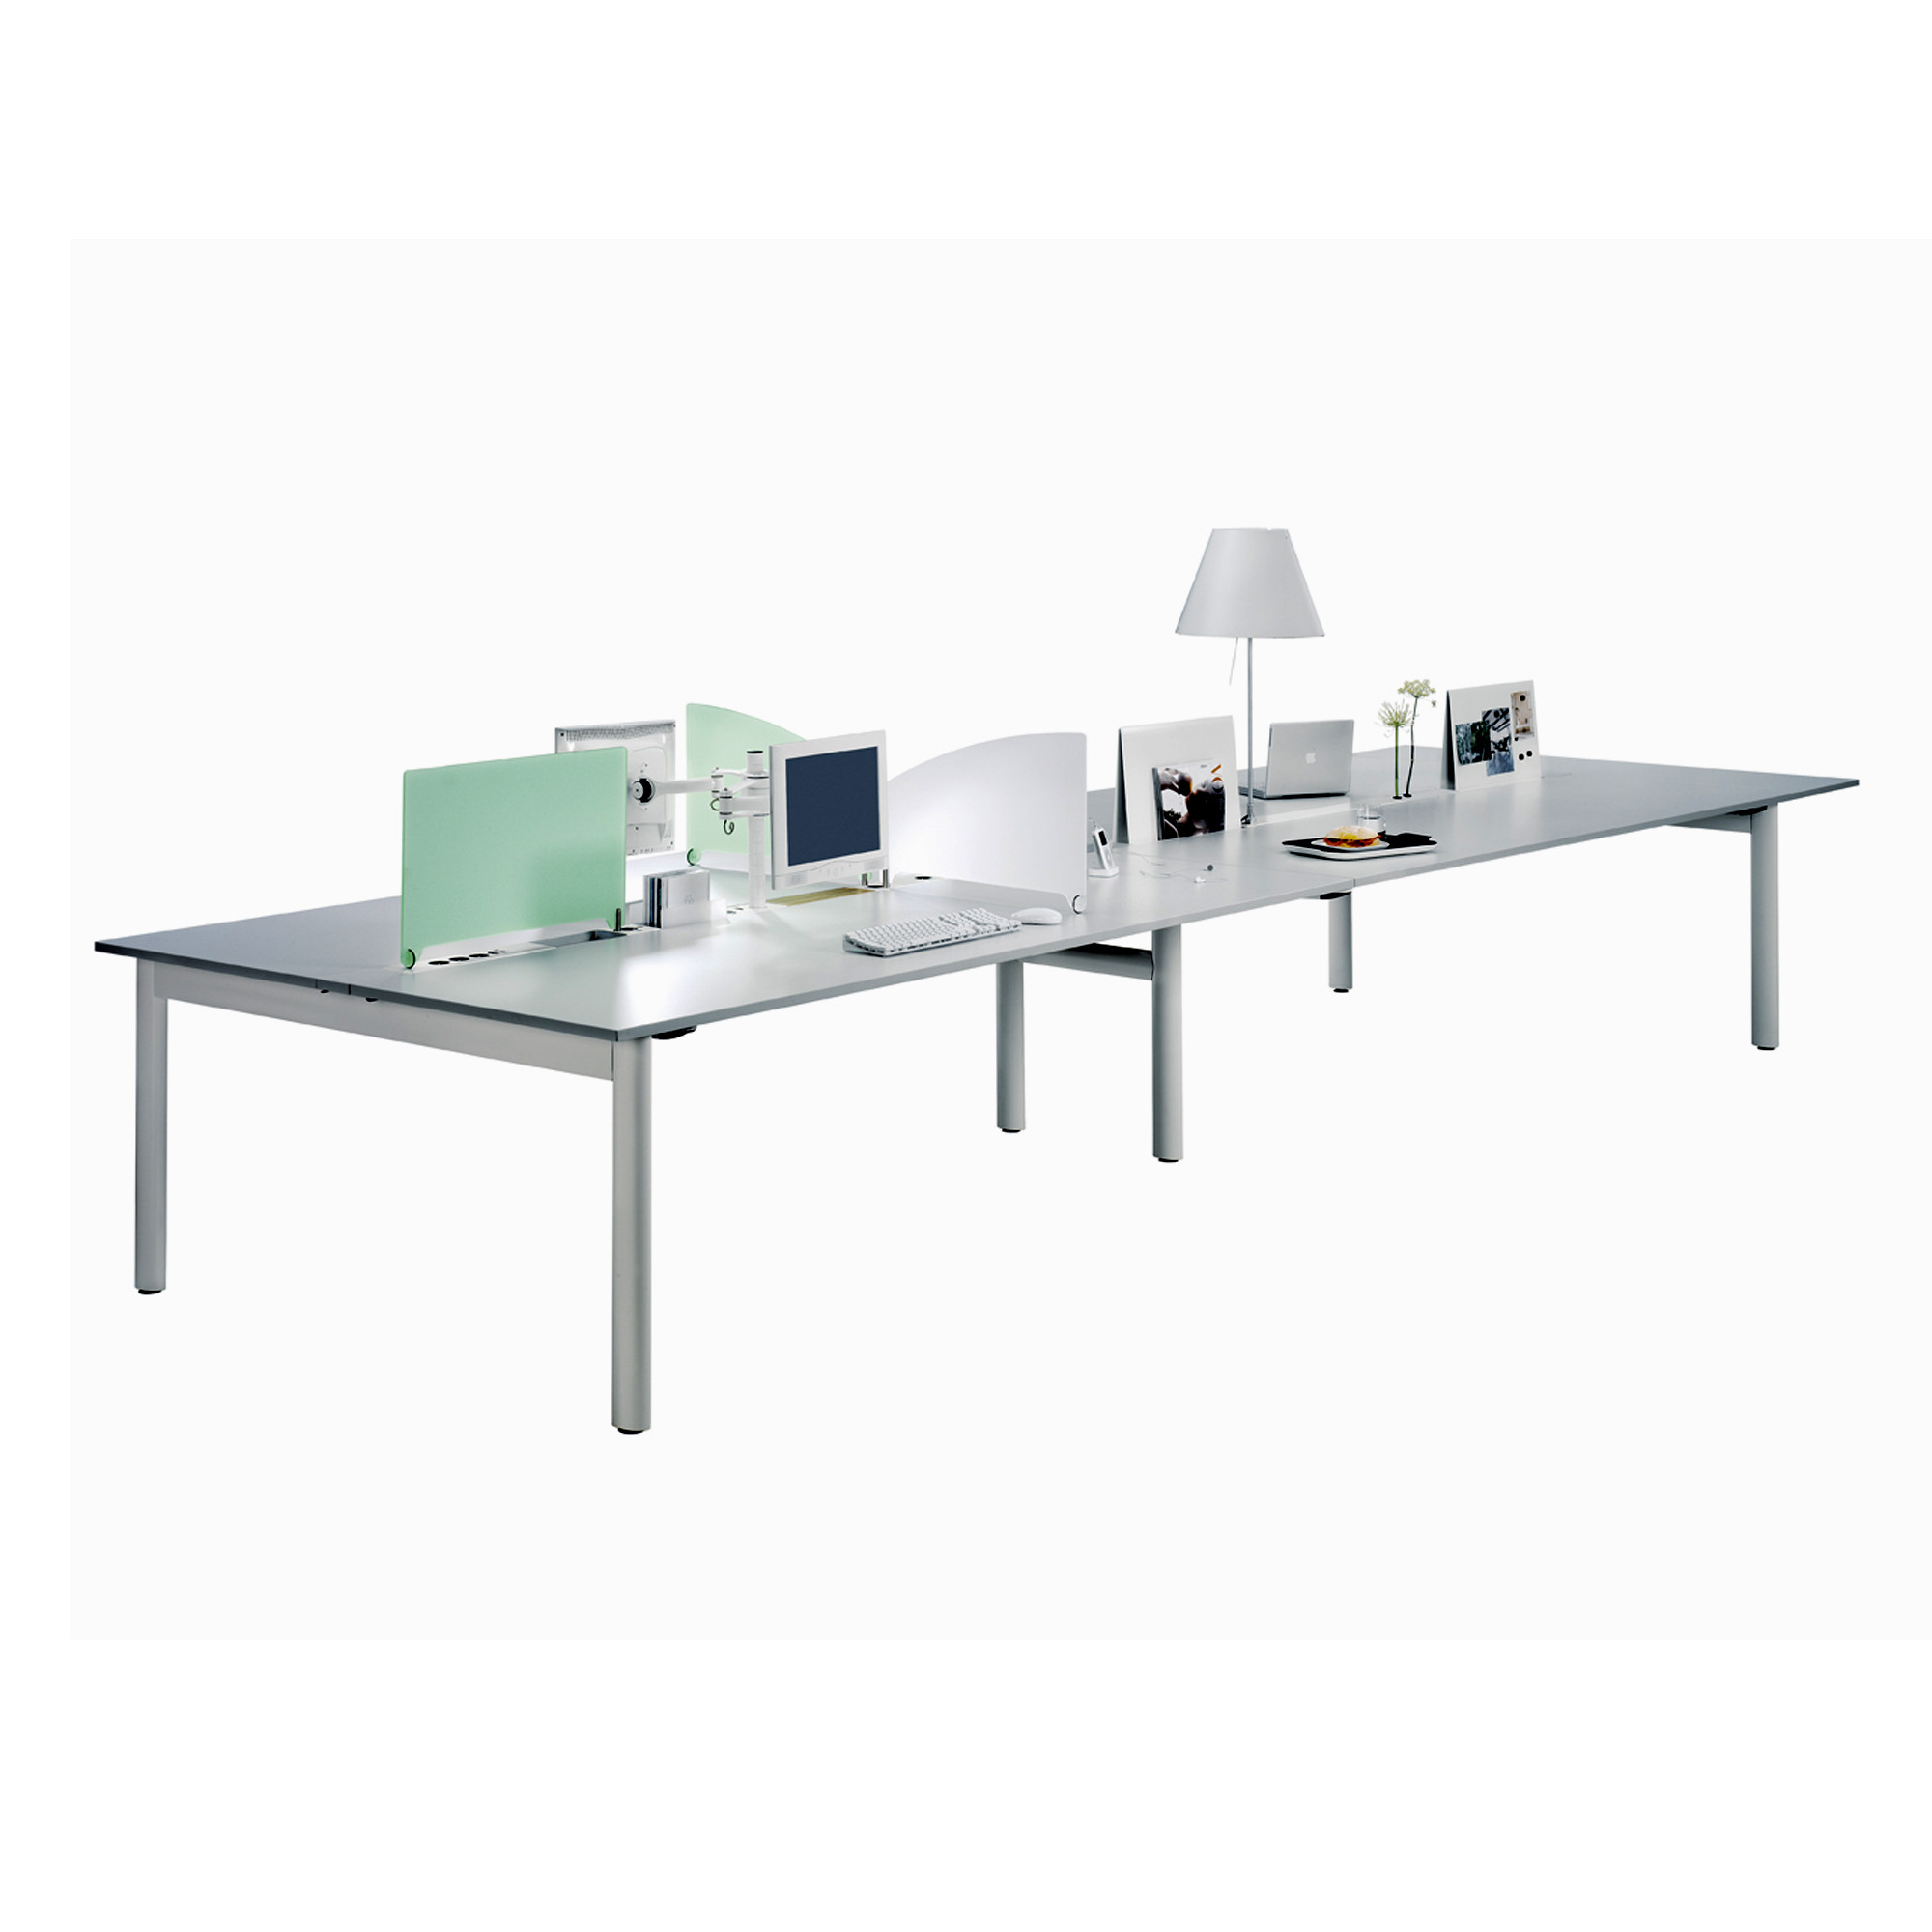 Ahrend 500 Office Bench